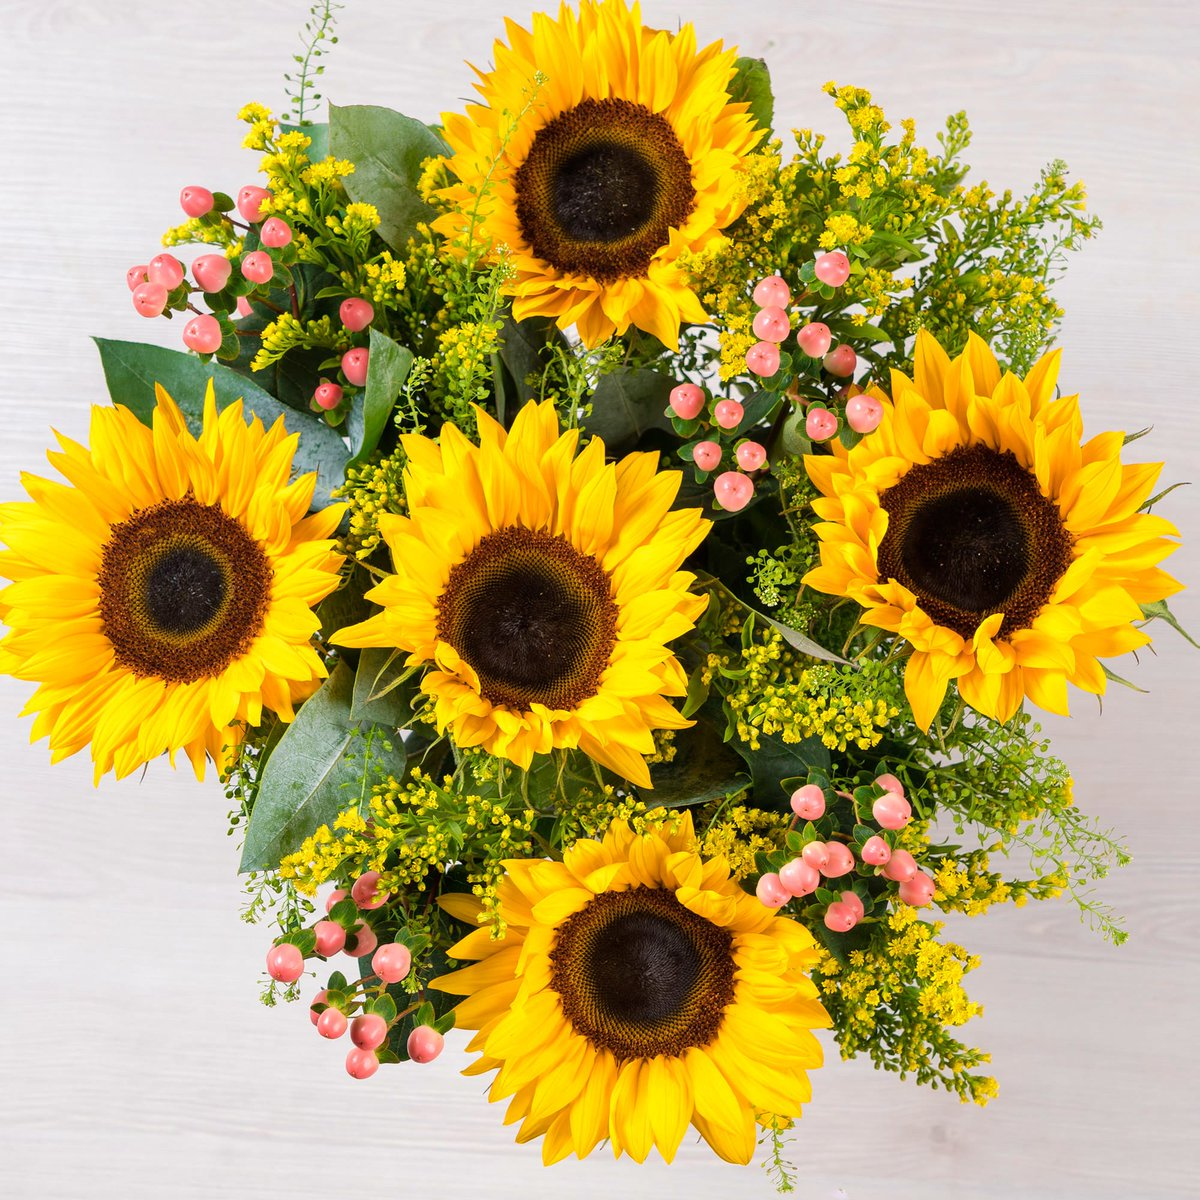 Buy the summer delights bouquet for this anniversary gift